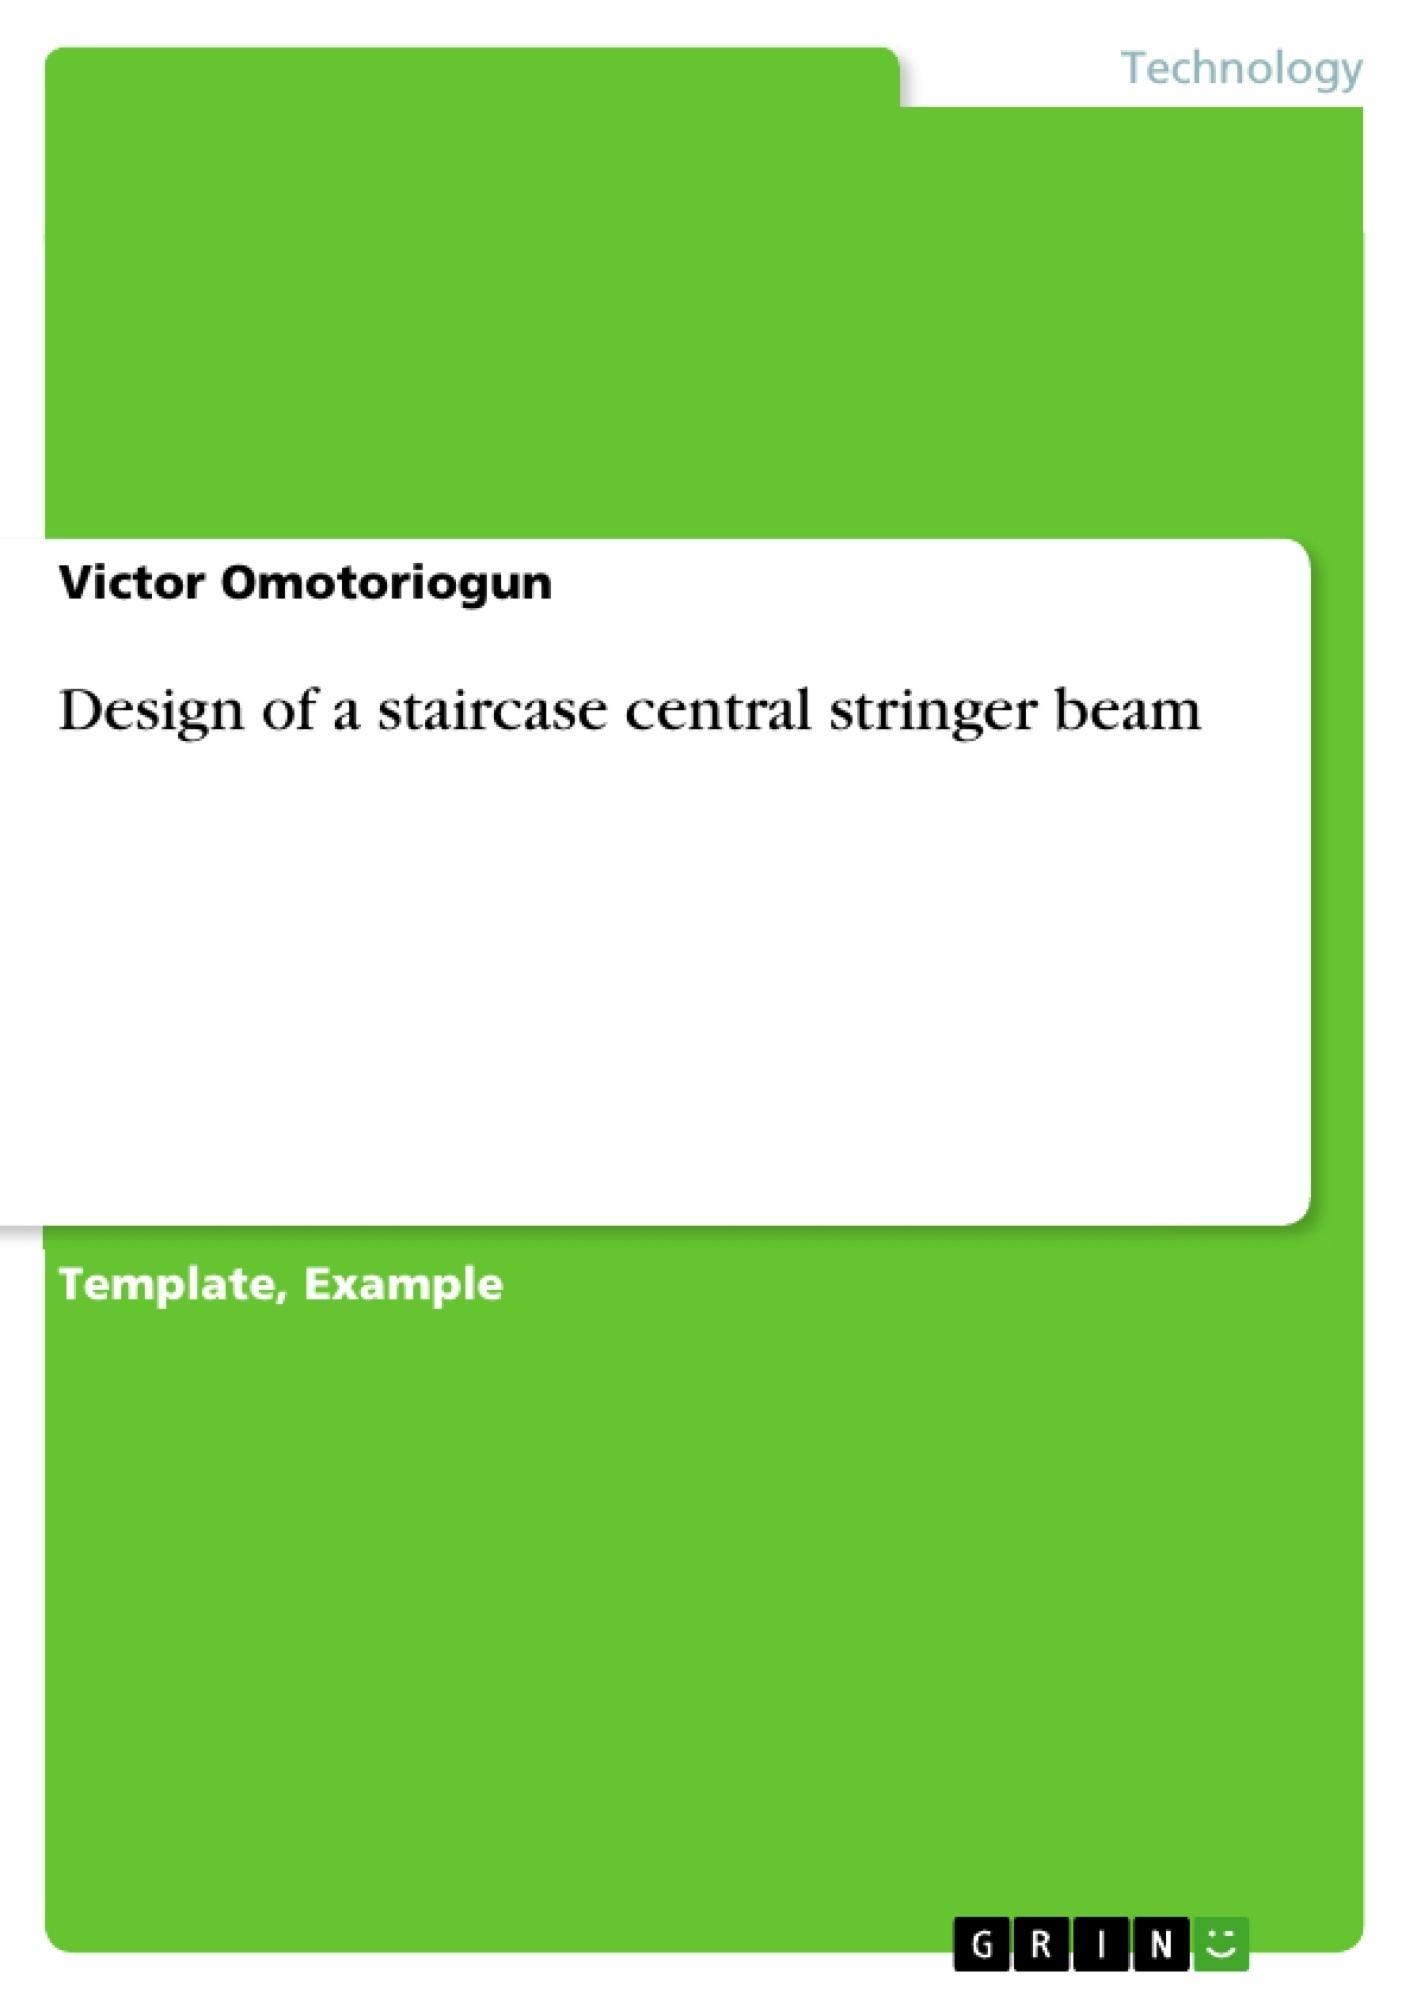 Title: Design of a staircase central stringer beam